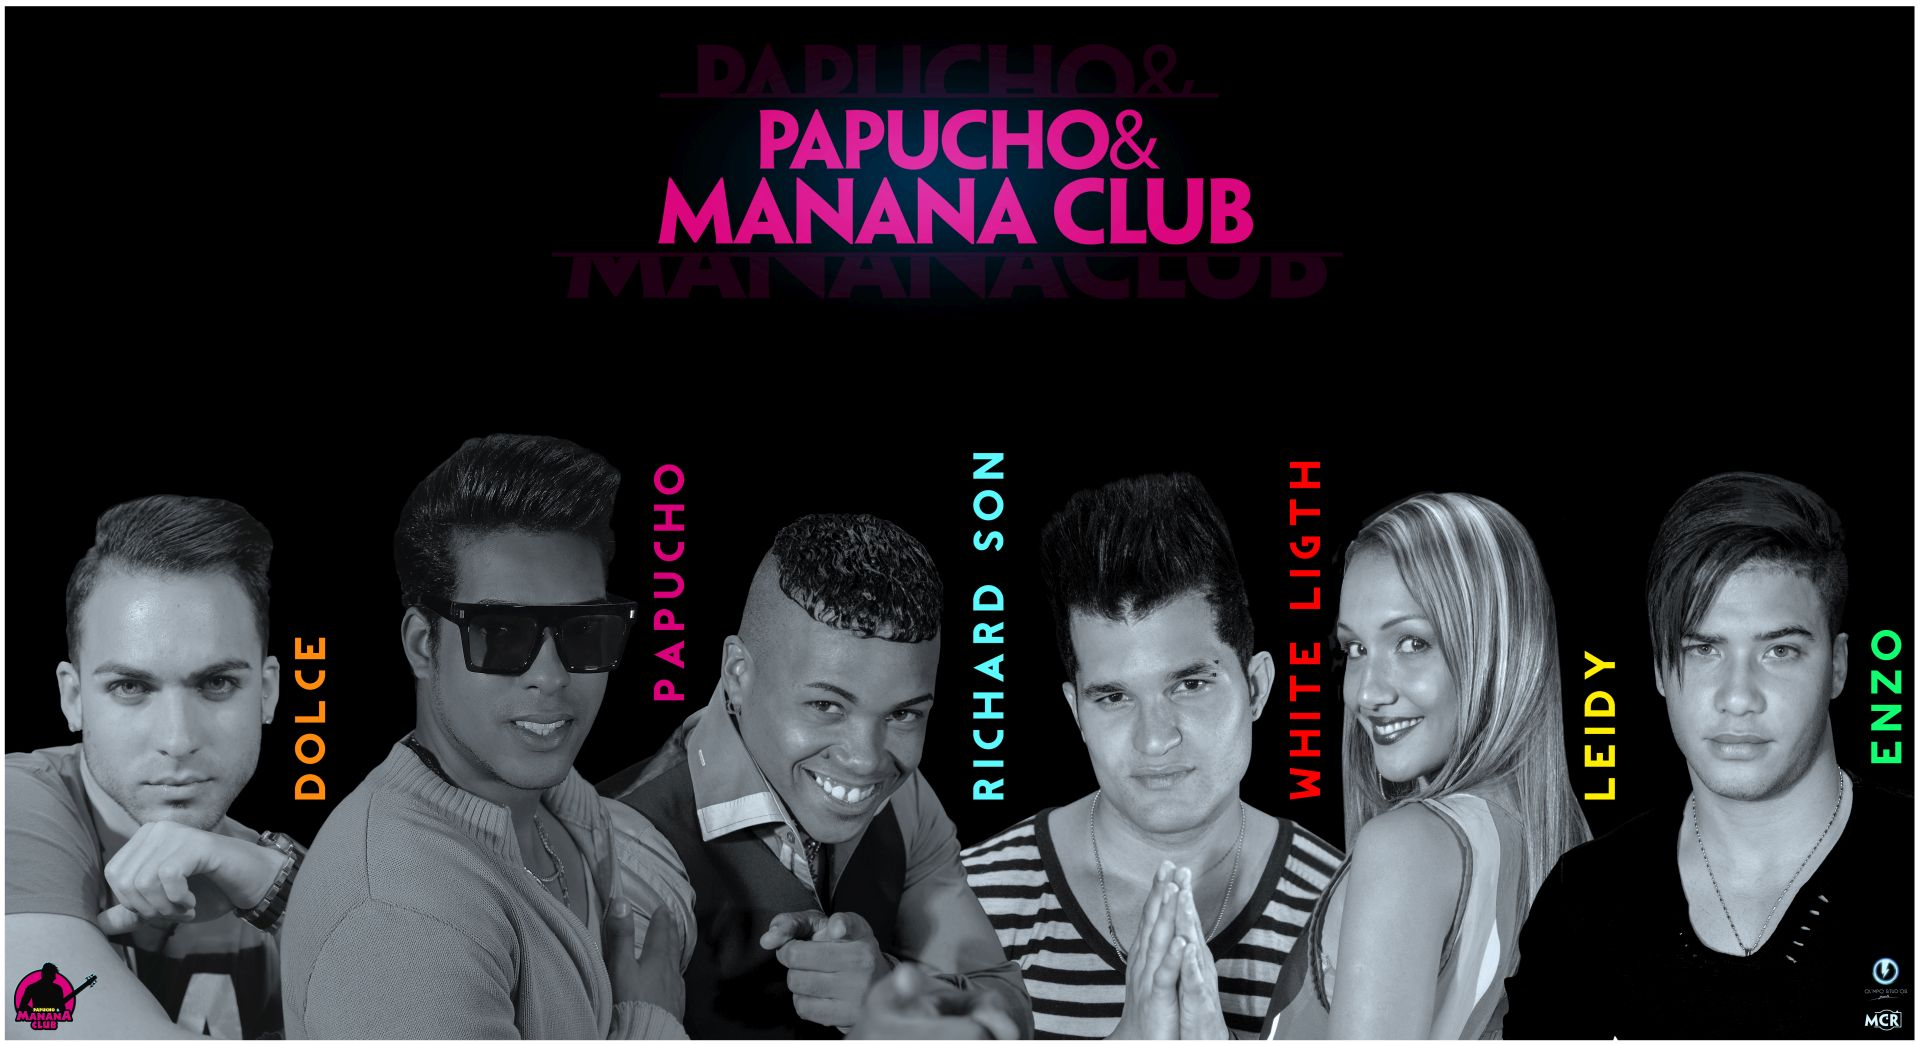 Manana Club Y Papucho_all.jpg